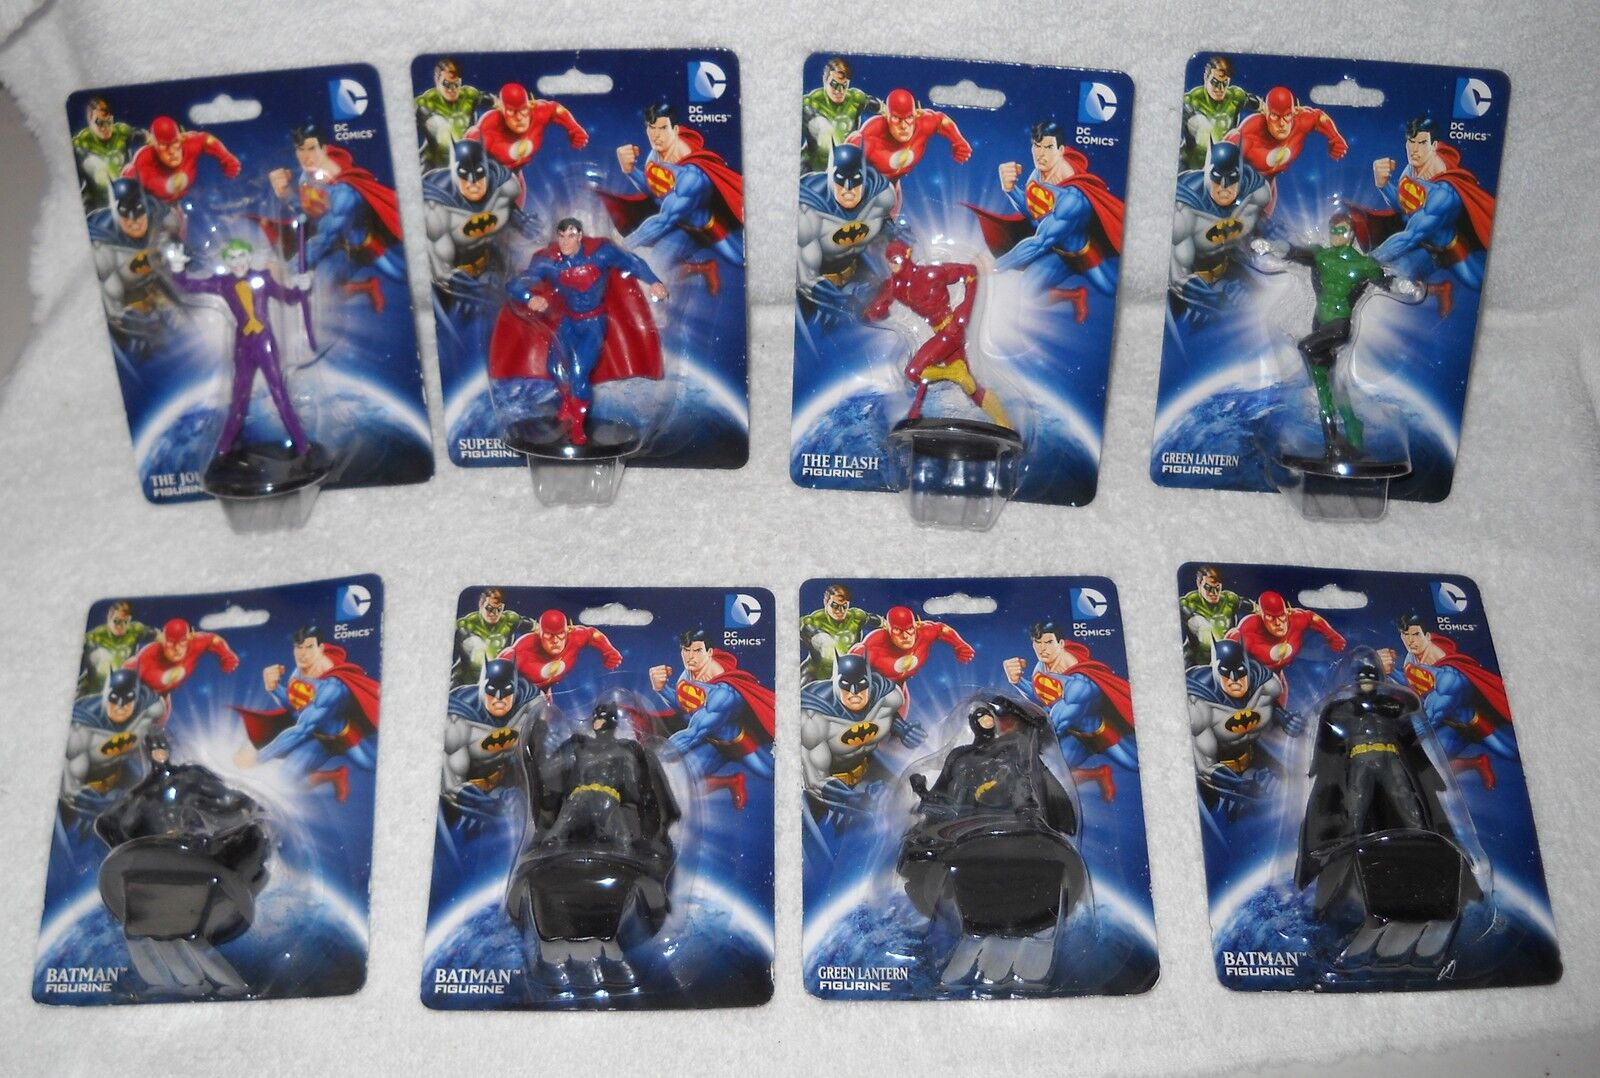 7166 f - dc comics 2  zahlen - 4 batman und joker, superman, flash, Grün lantern